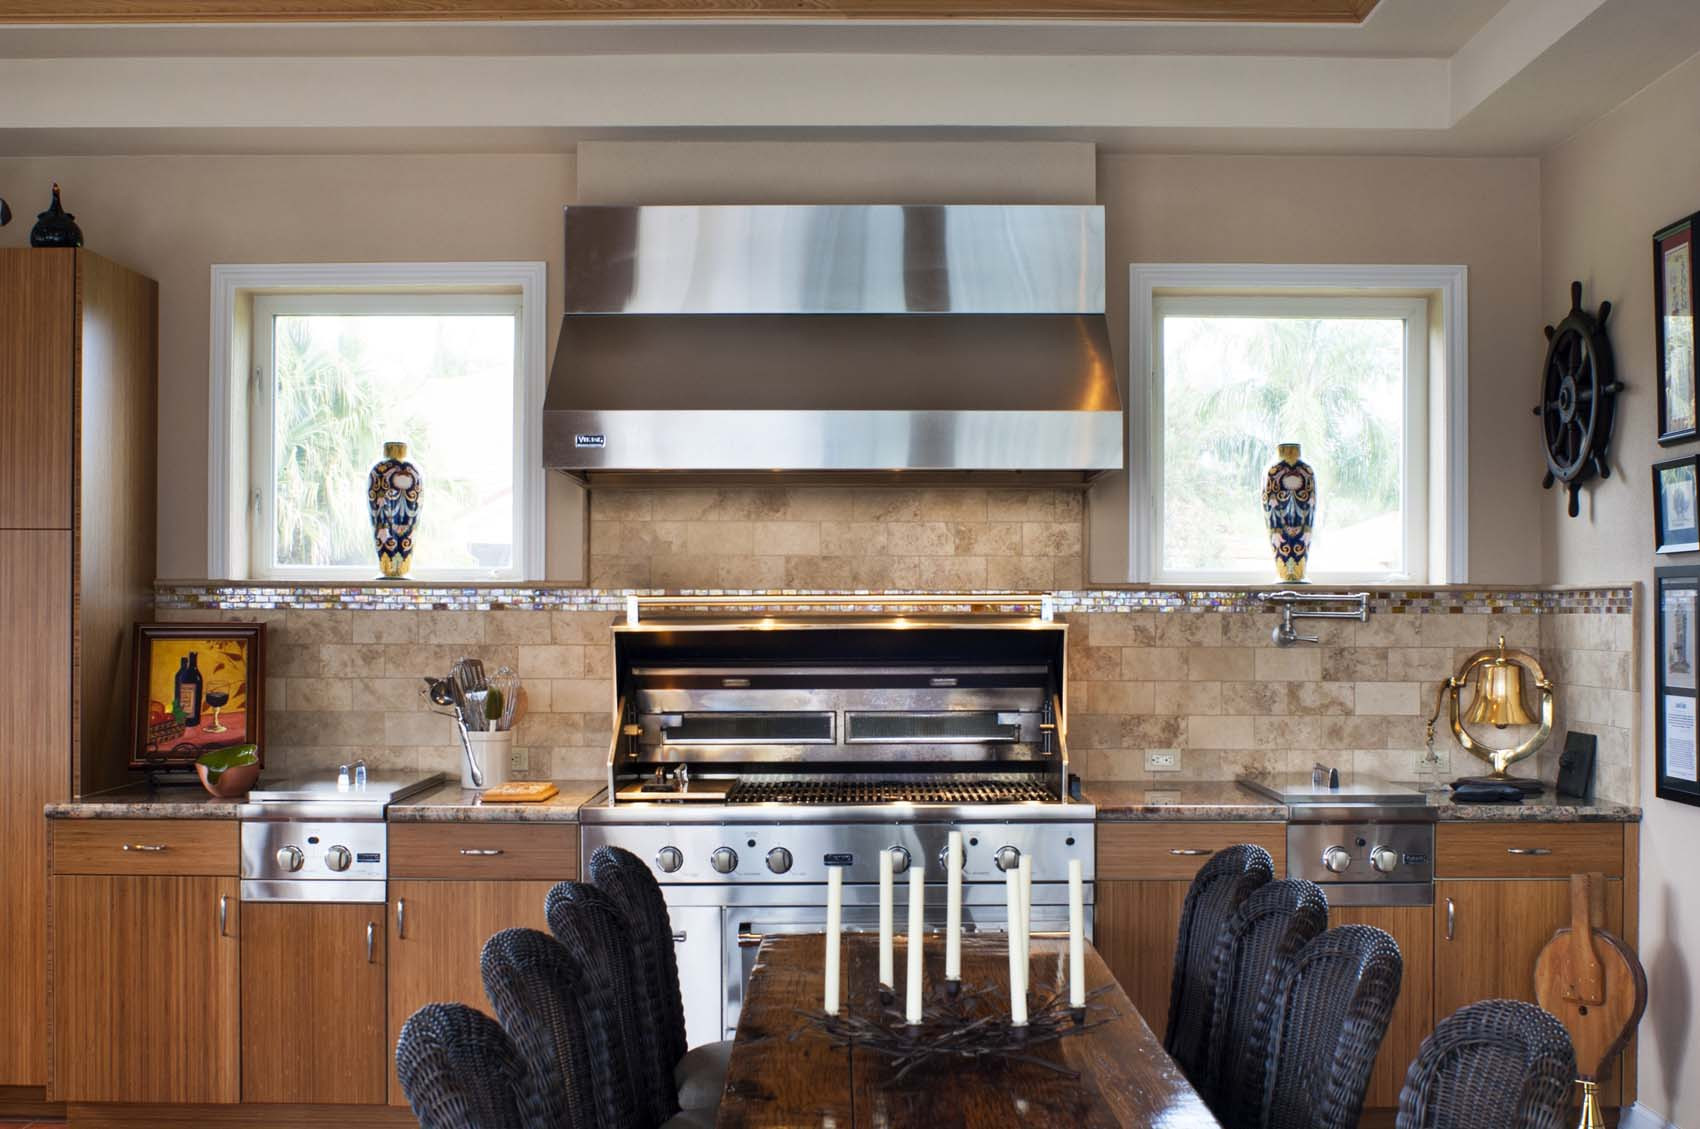 Custom designed outdoor kitchen with high end, commercial grade appliances and grill.